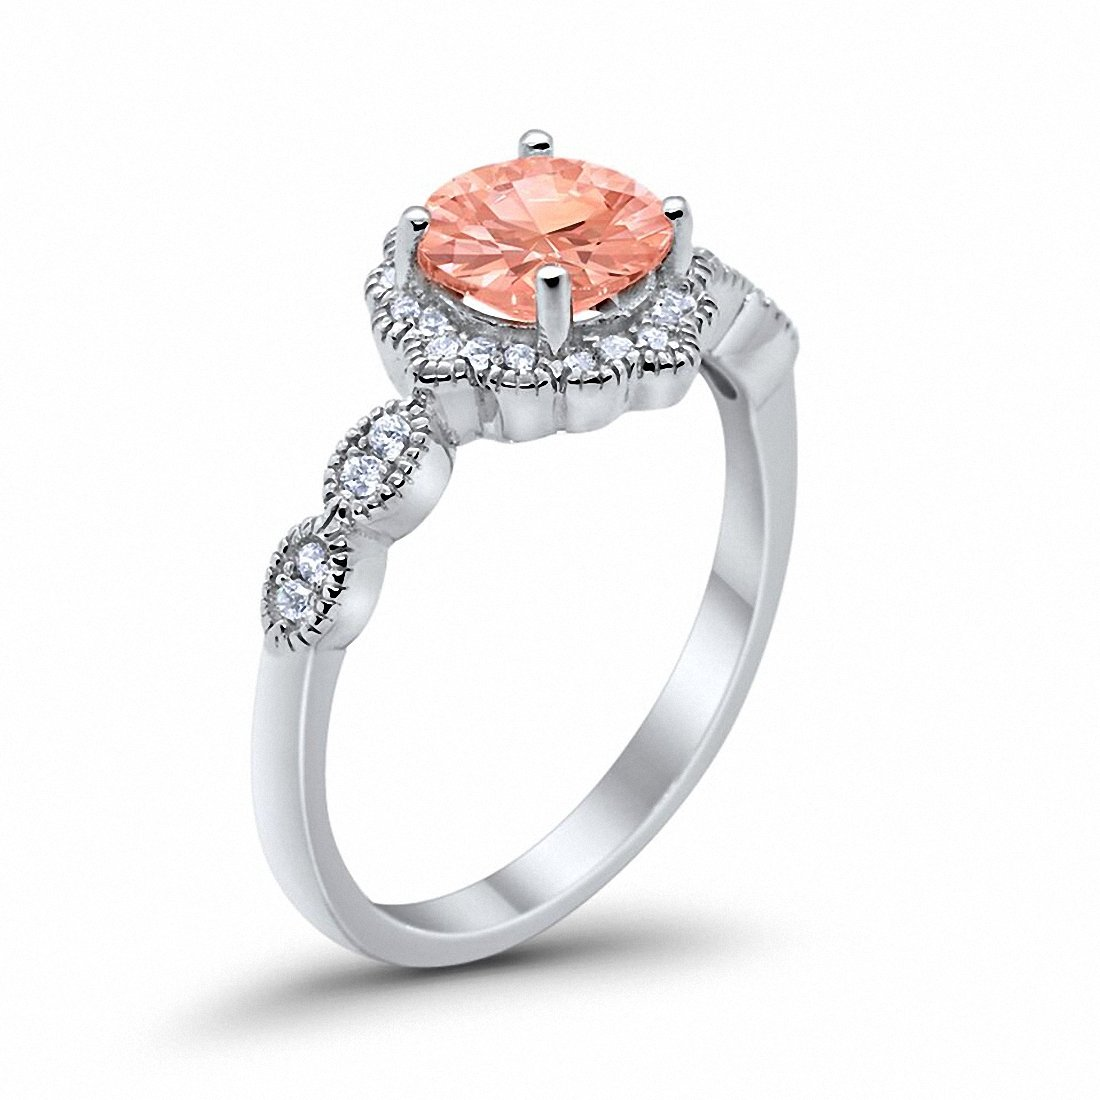 Floral Art Engagement Ring Simulated Morganite Cubic Zirconia 925 Sterling Silver